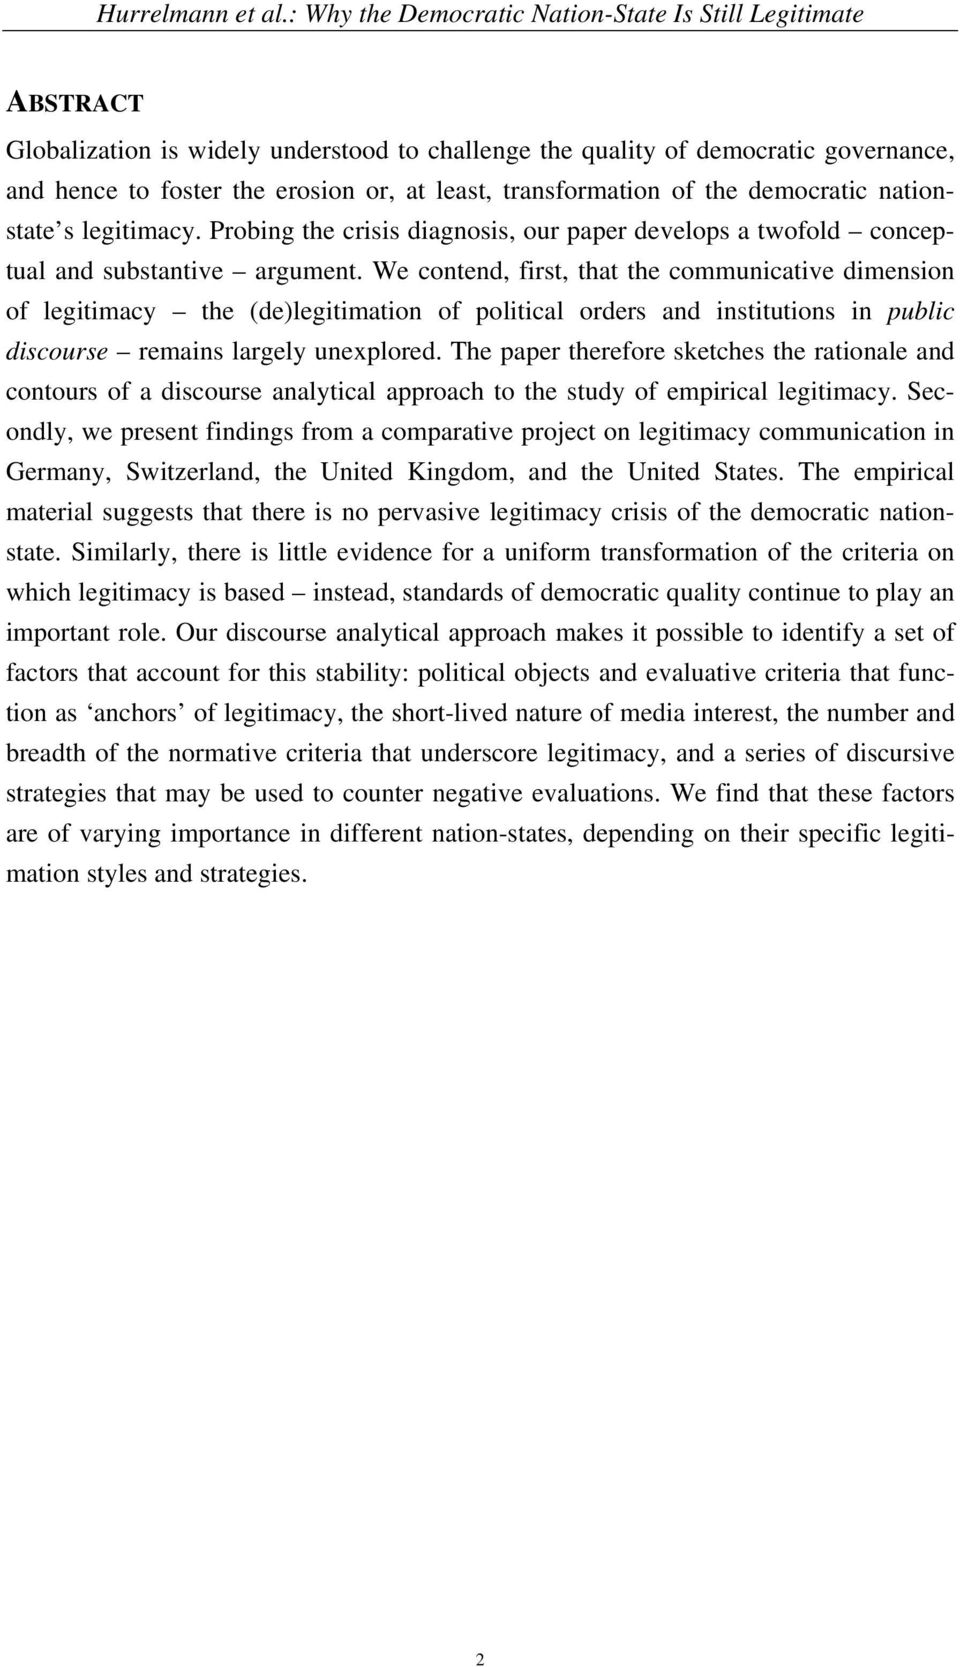 We contend, first, that the communicative dimension of legitimacy the (de)legitimation of political orders and institutions in public discourse remains largely unexplored.